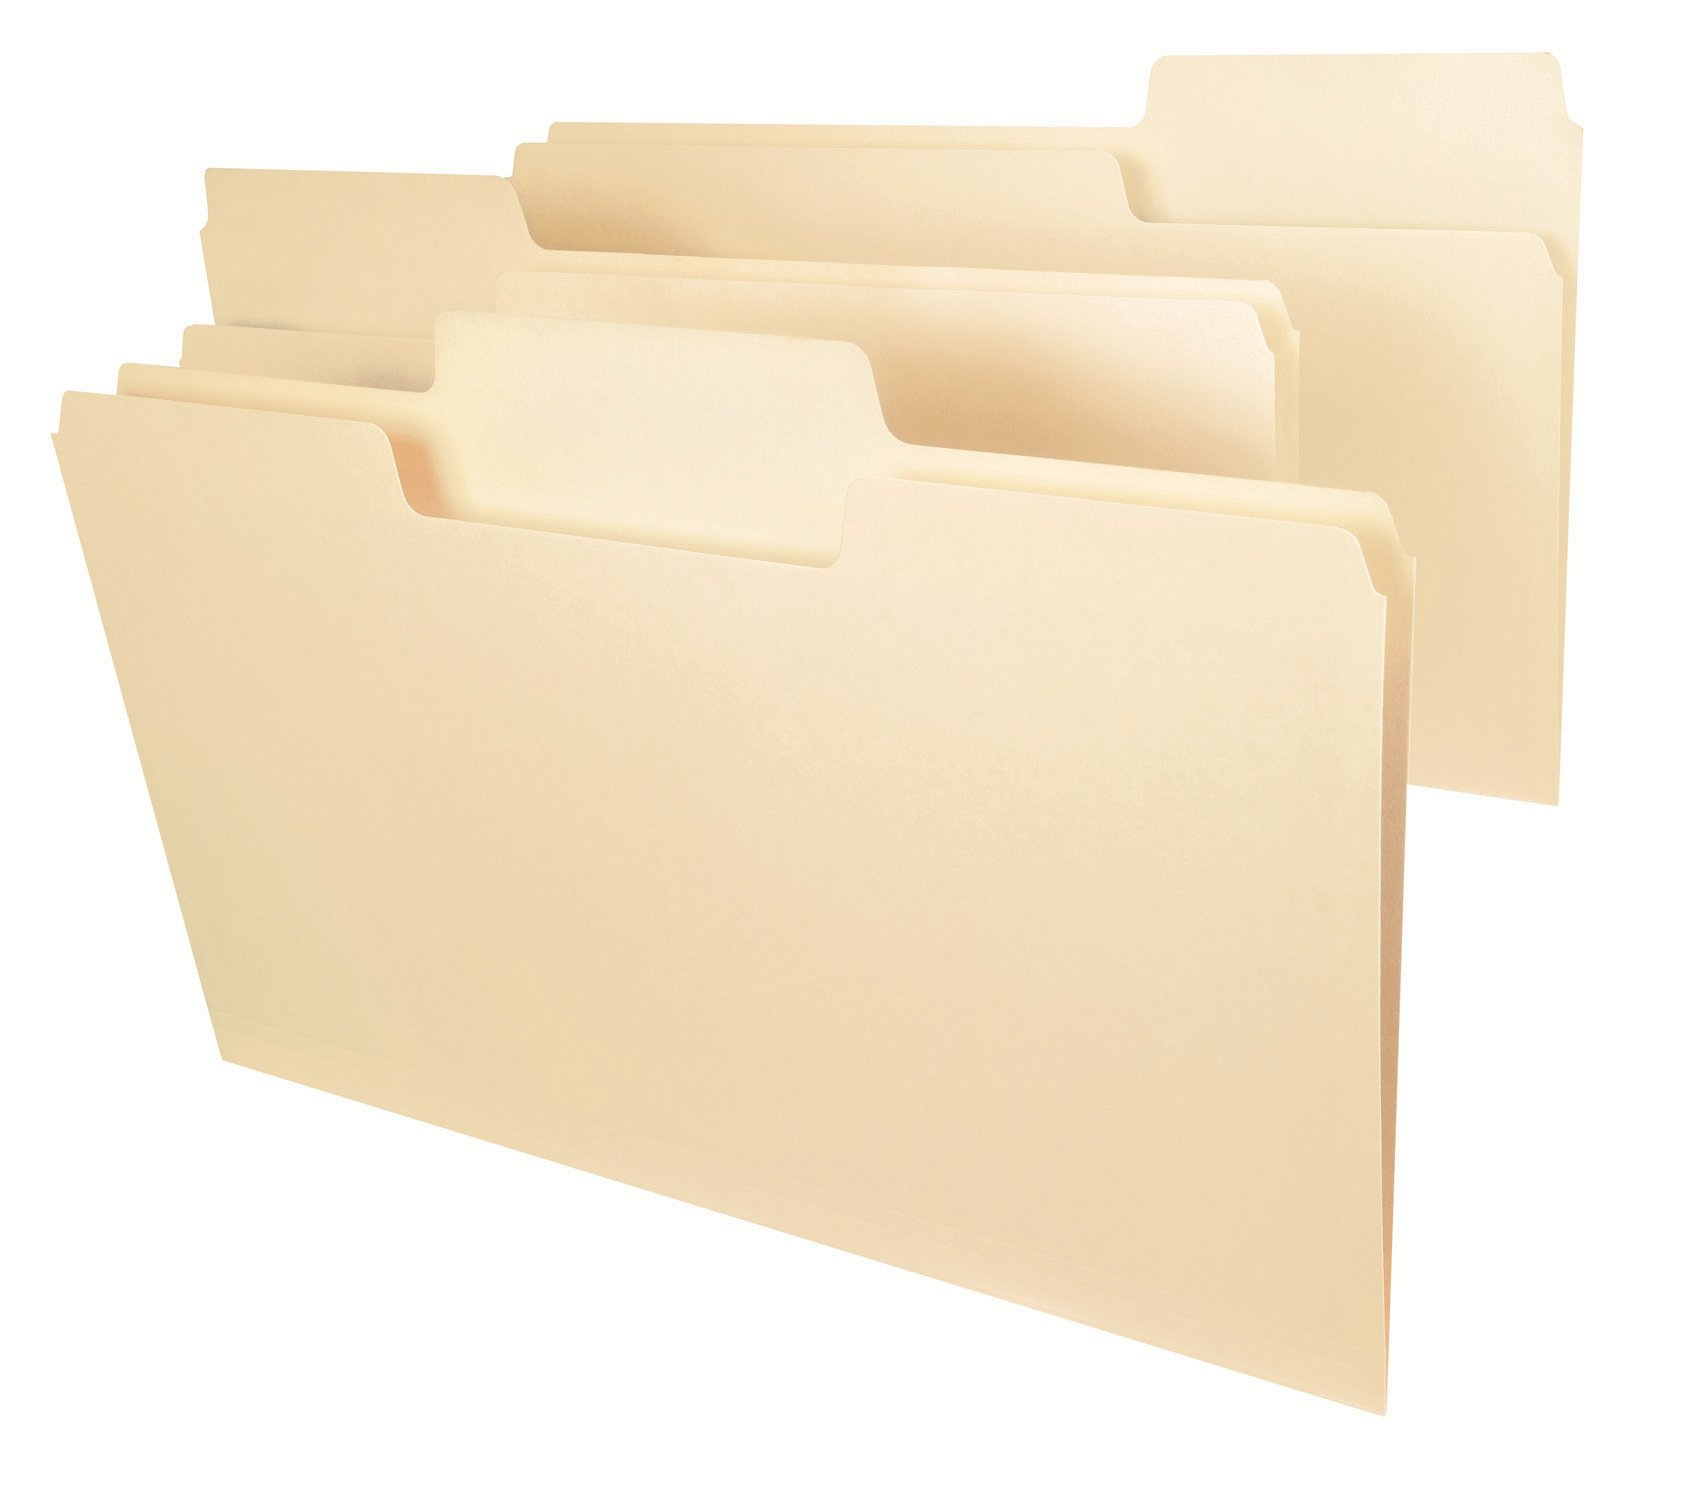 Smead SuperTab File Folder, Oversized 1/3-Cut Tab, Legal Size, Manila, 100 Per Box (15301)